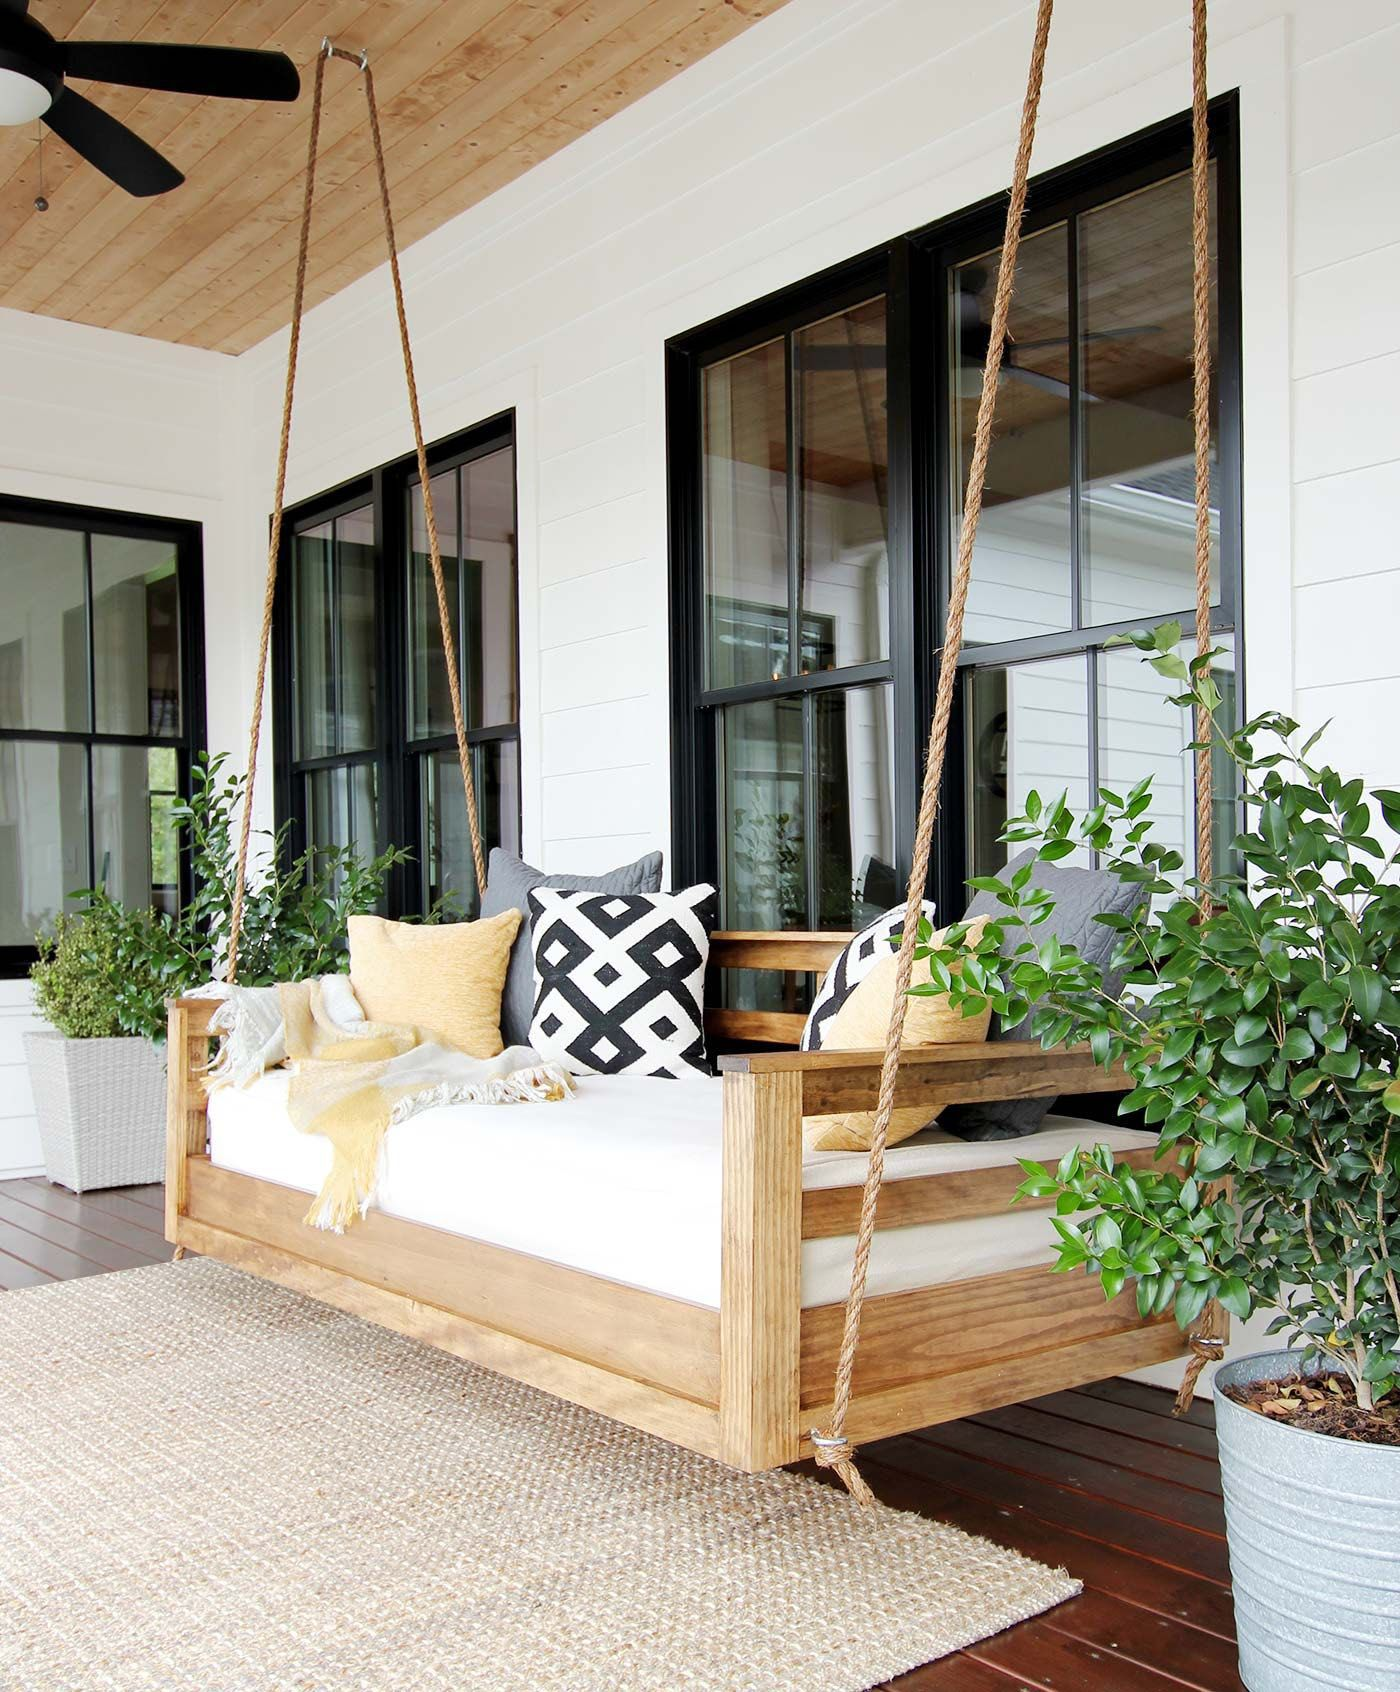 Free Diy Porch Swing Plans Ideas To Chill In Your Front Porch Porch Design Front Porch Design House With Porch